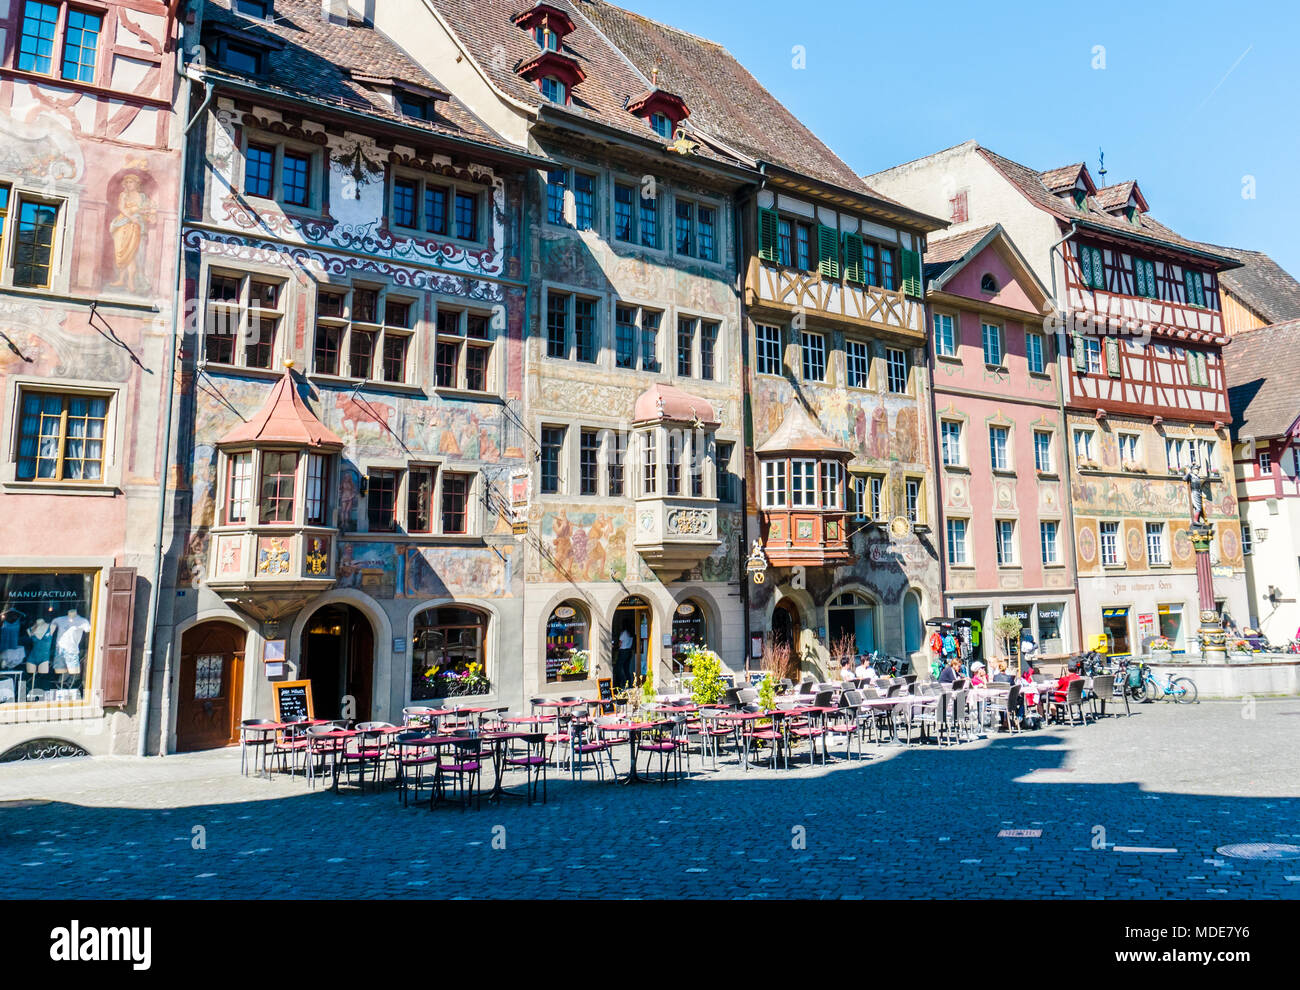 Town Square Of Stain Am Rhein With Typical Architecture And Fresco Painting  On A Beautiful And